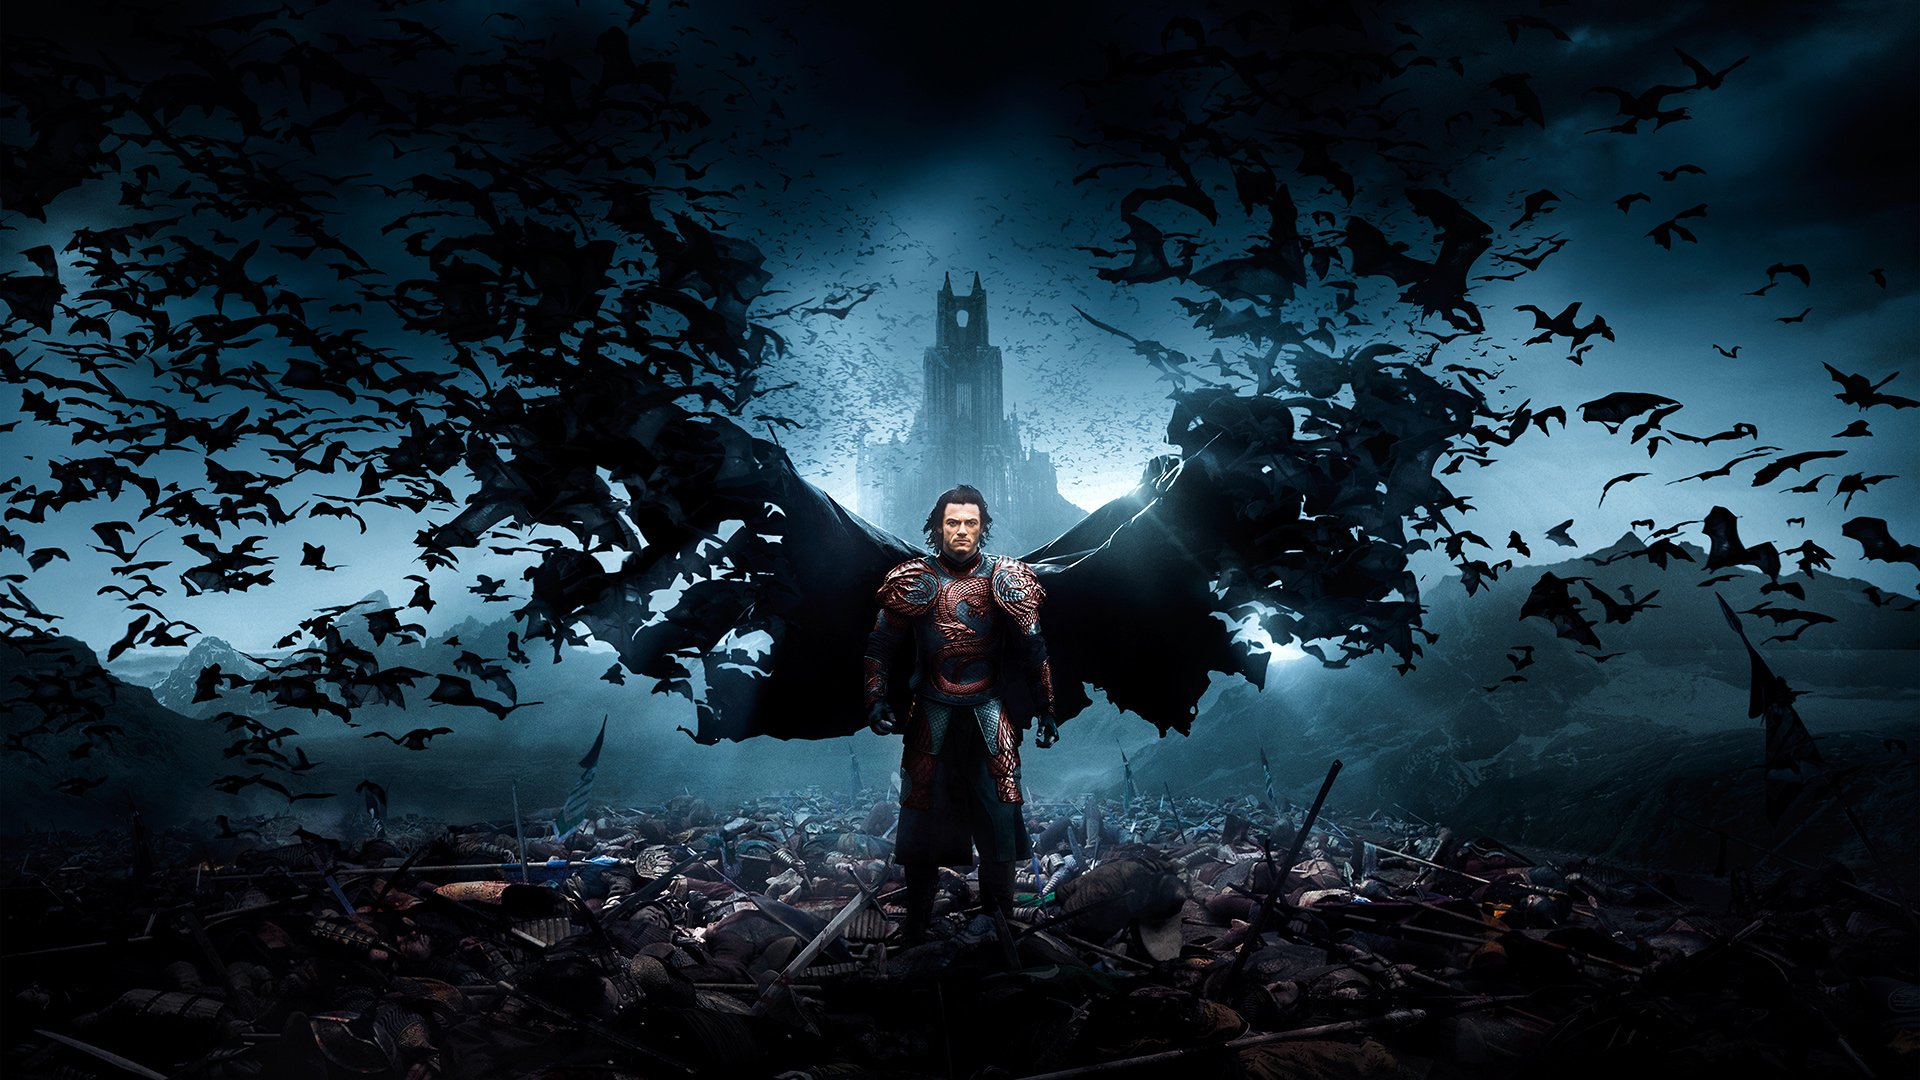 Rampage Movie Hd Wallpapers Download 1080p: Dracula Untold Full HD Fond D'écran And Arrière-Plan